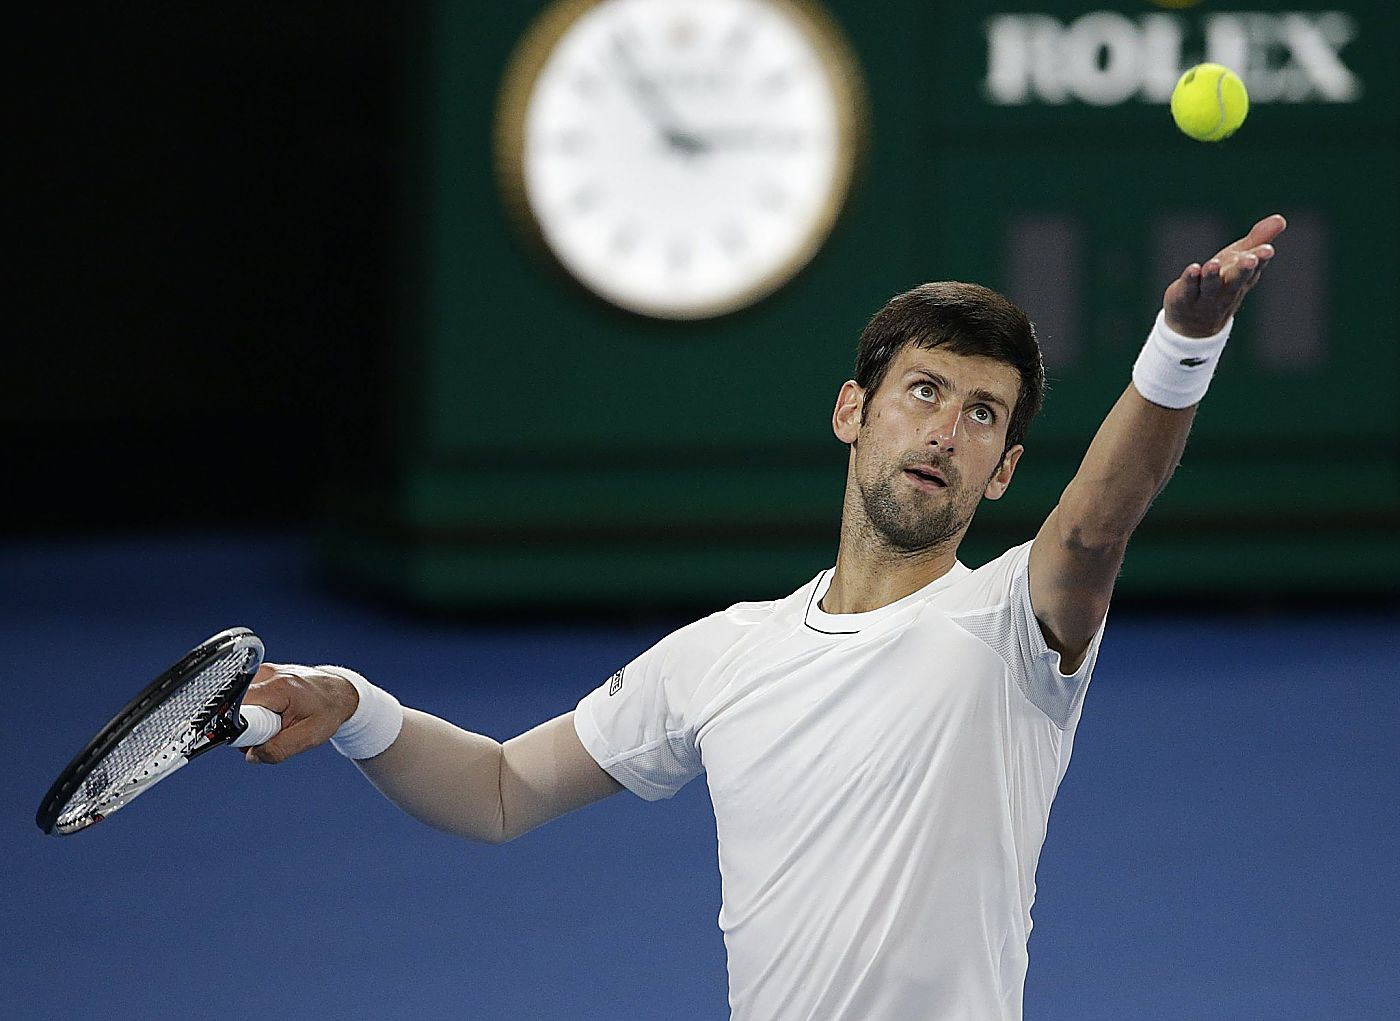 Indian Wells : Djokovic looking forward to playing pain-free